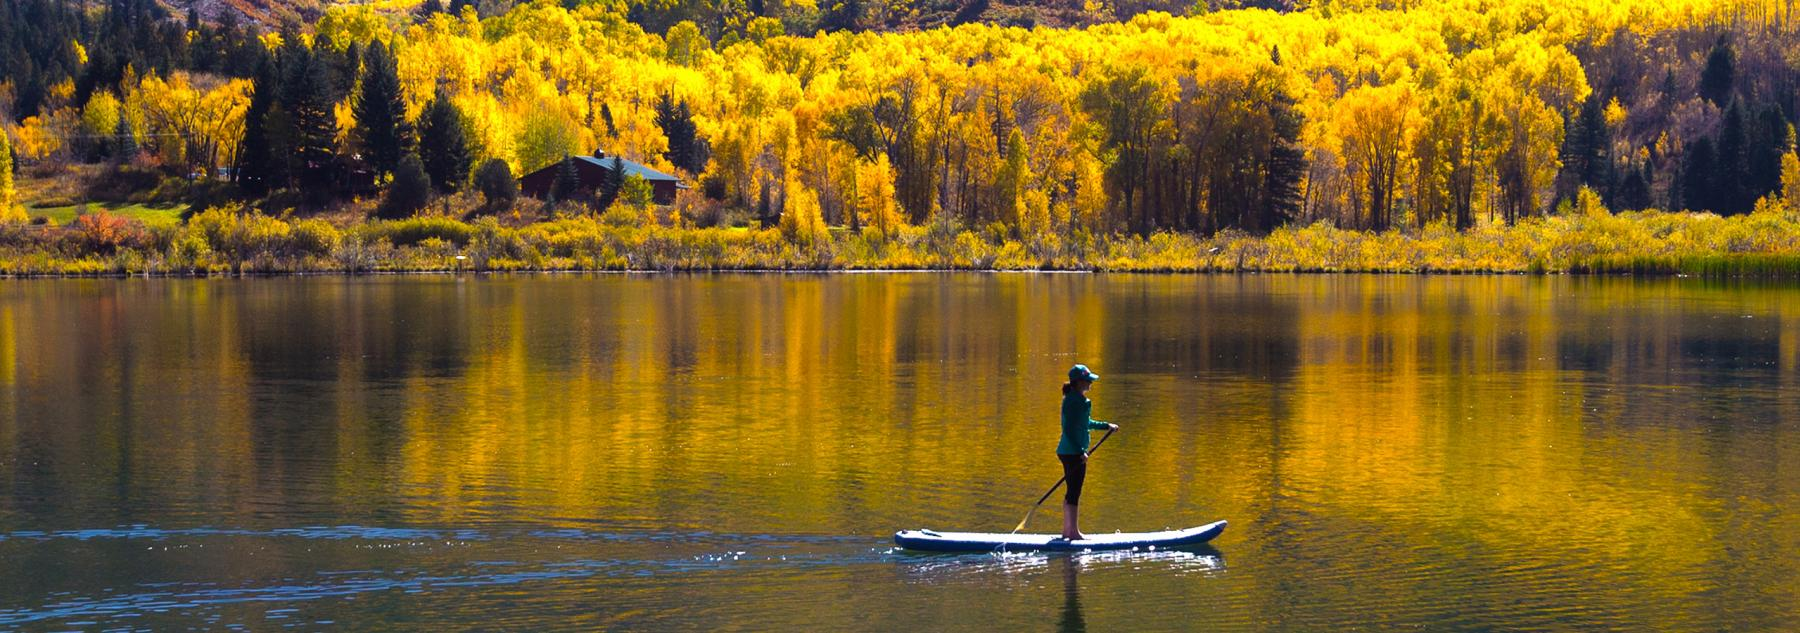 Paddleboarding the Fall